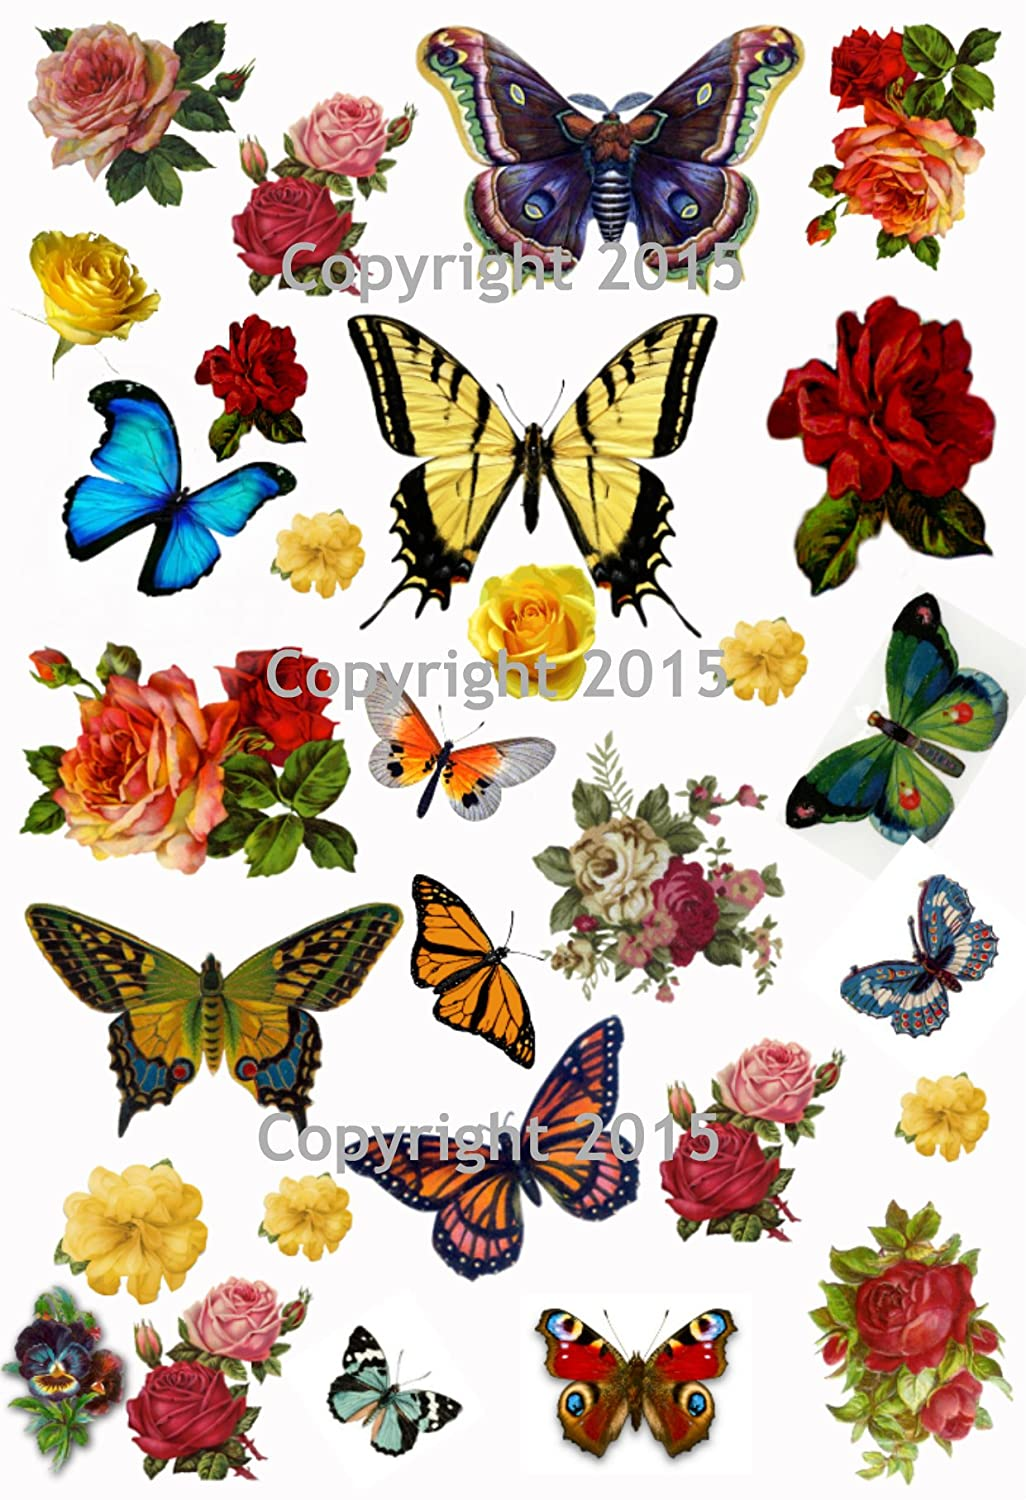 Vintage Butterflies and Flowers Collage Sheet Art Images for Decoupage, Scrapbooking, Jewelry Making Paper Moon Media